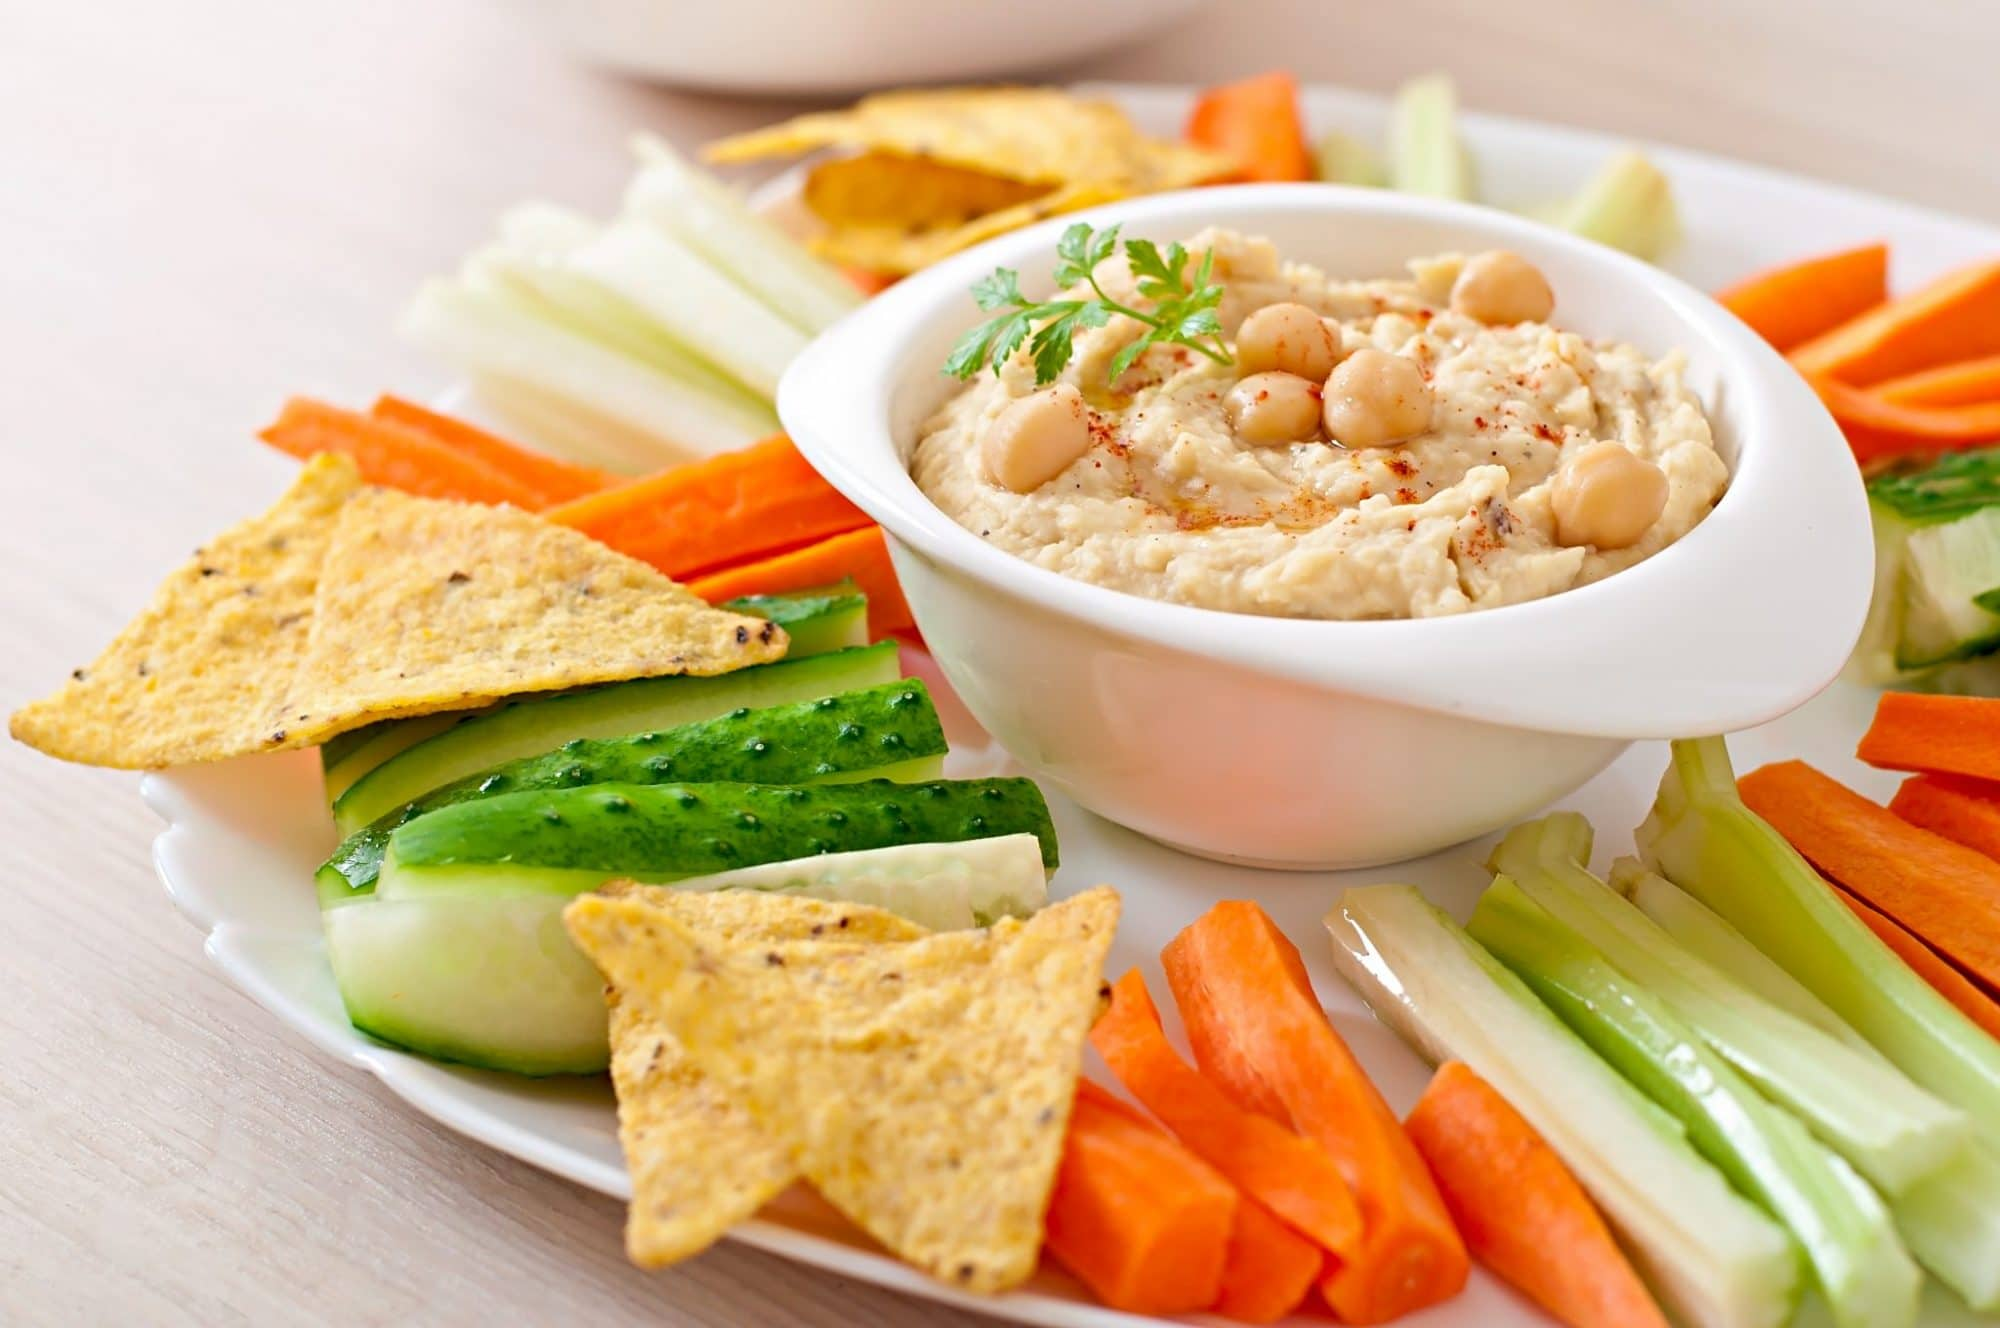 Top 6 On-The-Go Snacks to Drop Pounds